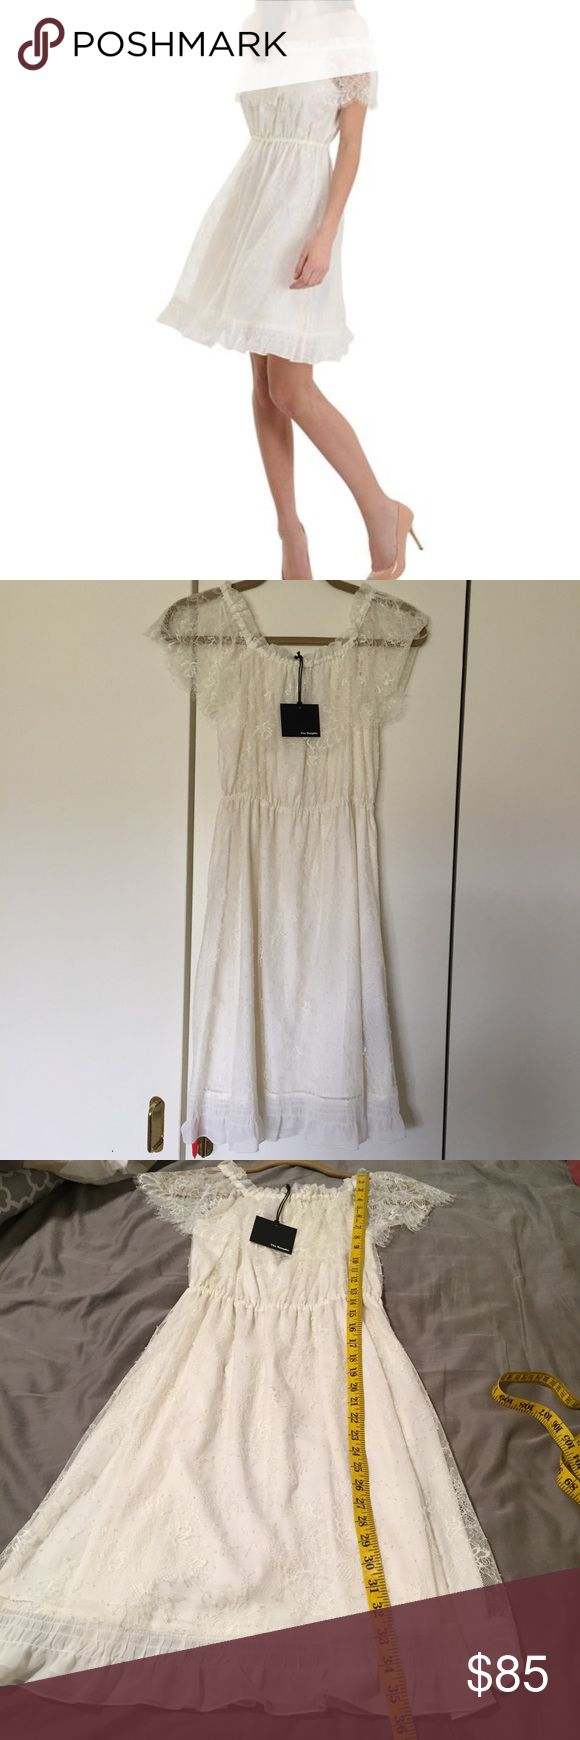 The Kooples bohemian lace dress size XXS Beautiful off-the-shoulder lace dress! New with tags - received as a gift but never wore. Store security tag is still on the dress, there will be a pinhole after it is removed. I have priced it to account for this. Keep this in mind. Measurements shown in photos. Please ask questions or request additional photos if you'd like, I want you to be happy with your purchase! ❌Model❌Trade❌✅Offers✅ The Kooples Dresses